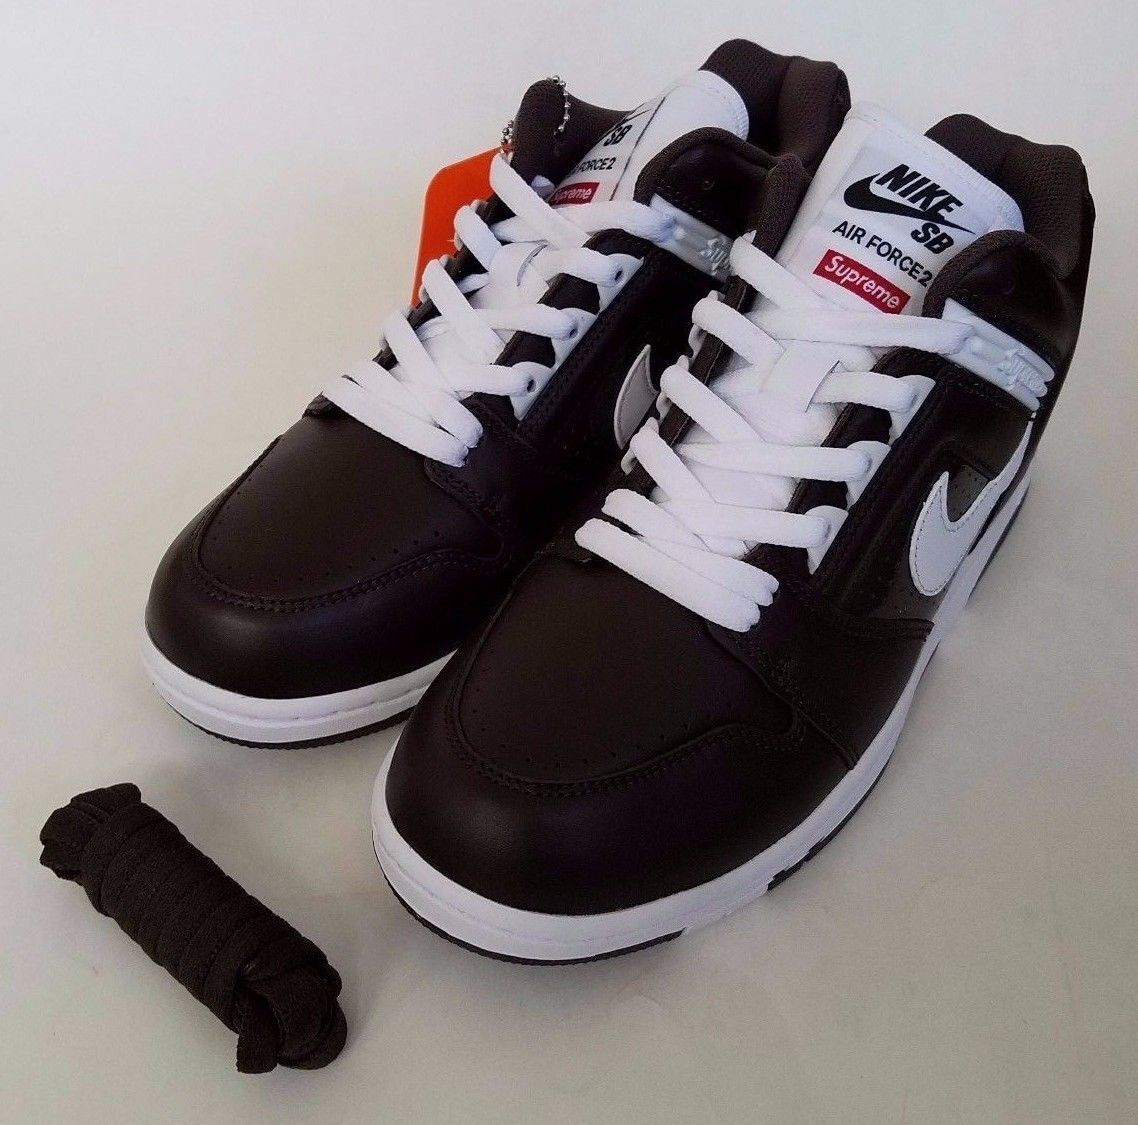 brand new 76981 6f1f1 Details about Supreme Nike SB Air Force 2 AF2 Low Baroque Brown White  AA0871-212 Sz 9